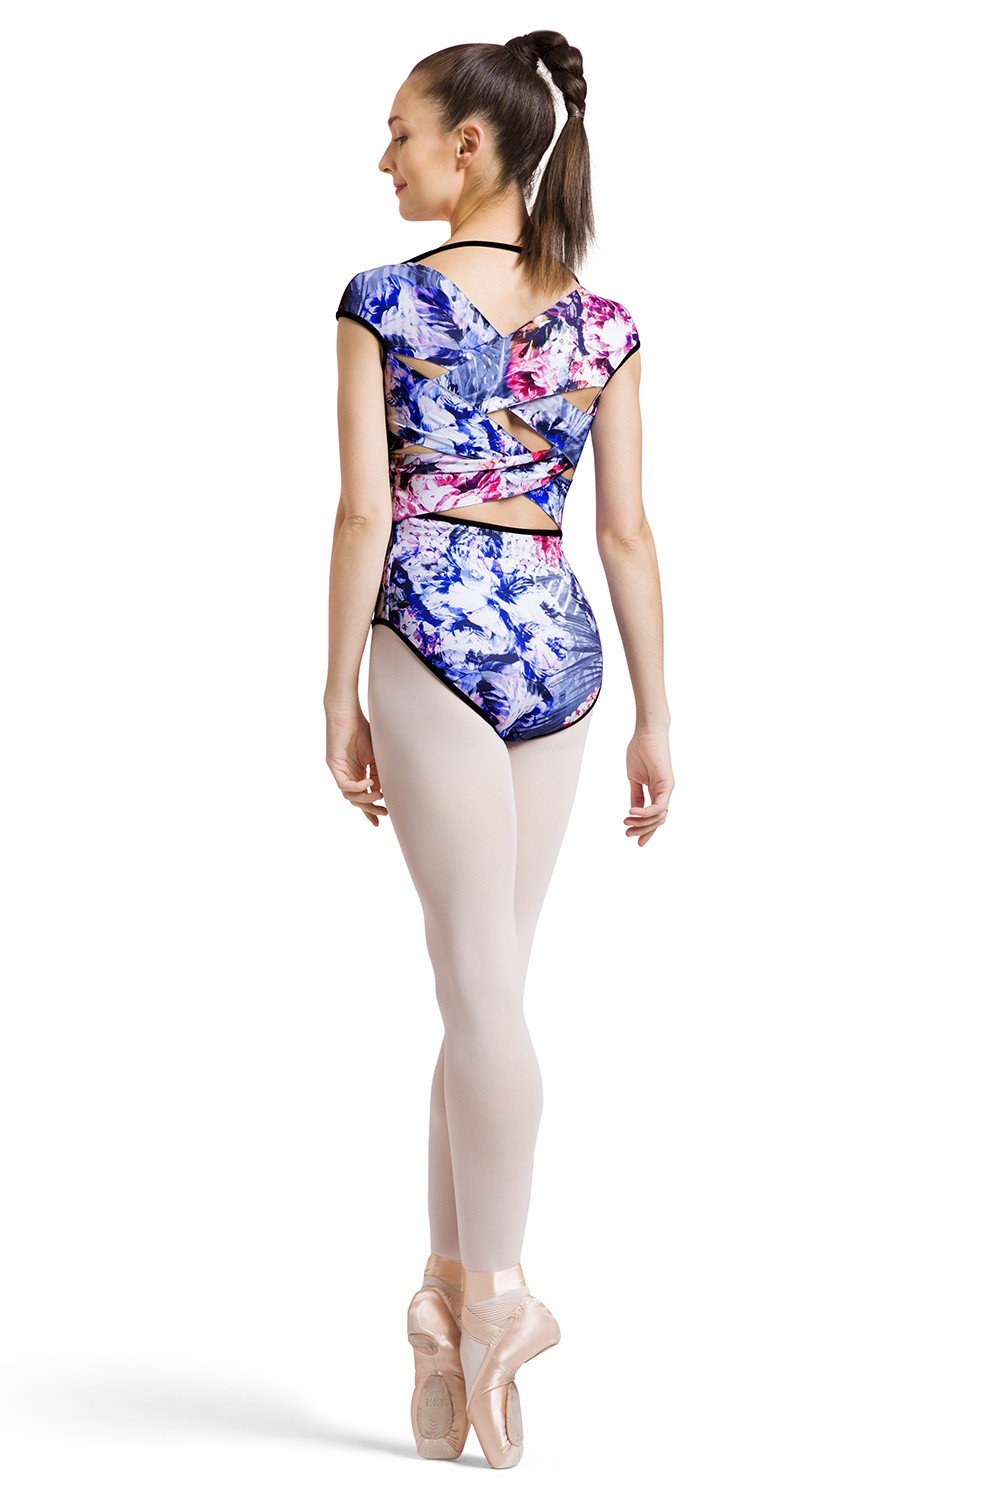 Daan Print Women's Dance Leotards